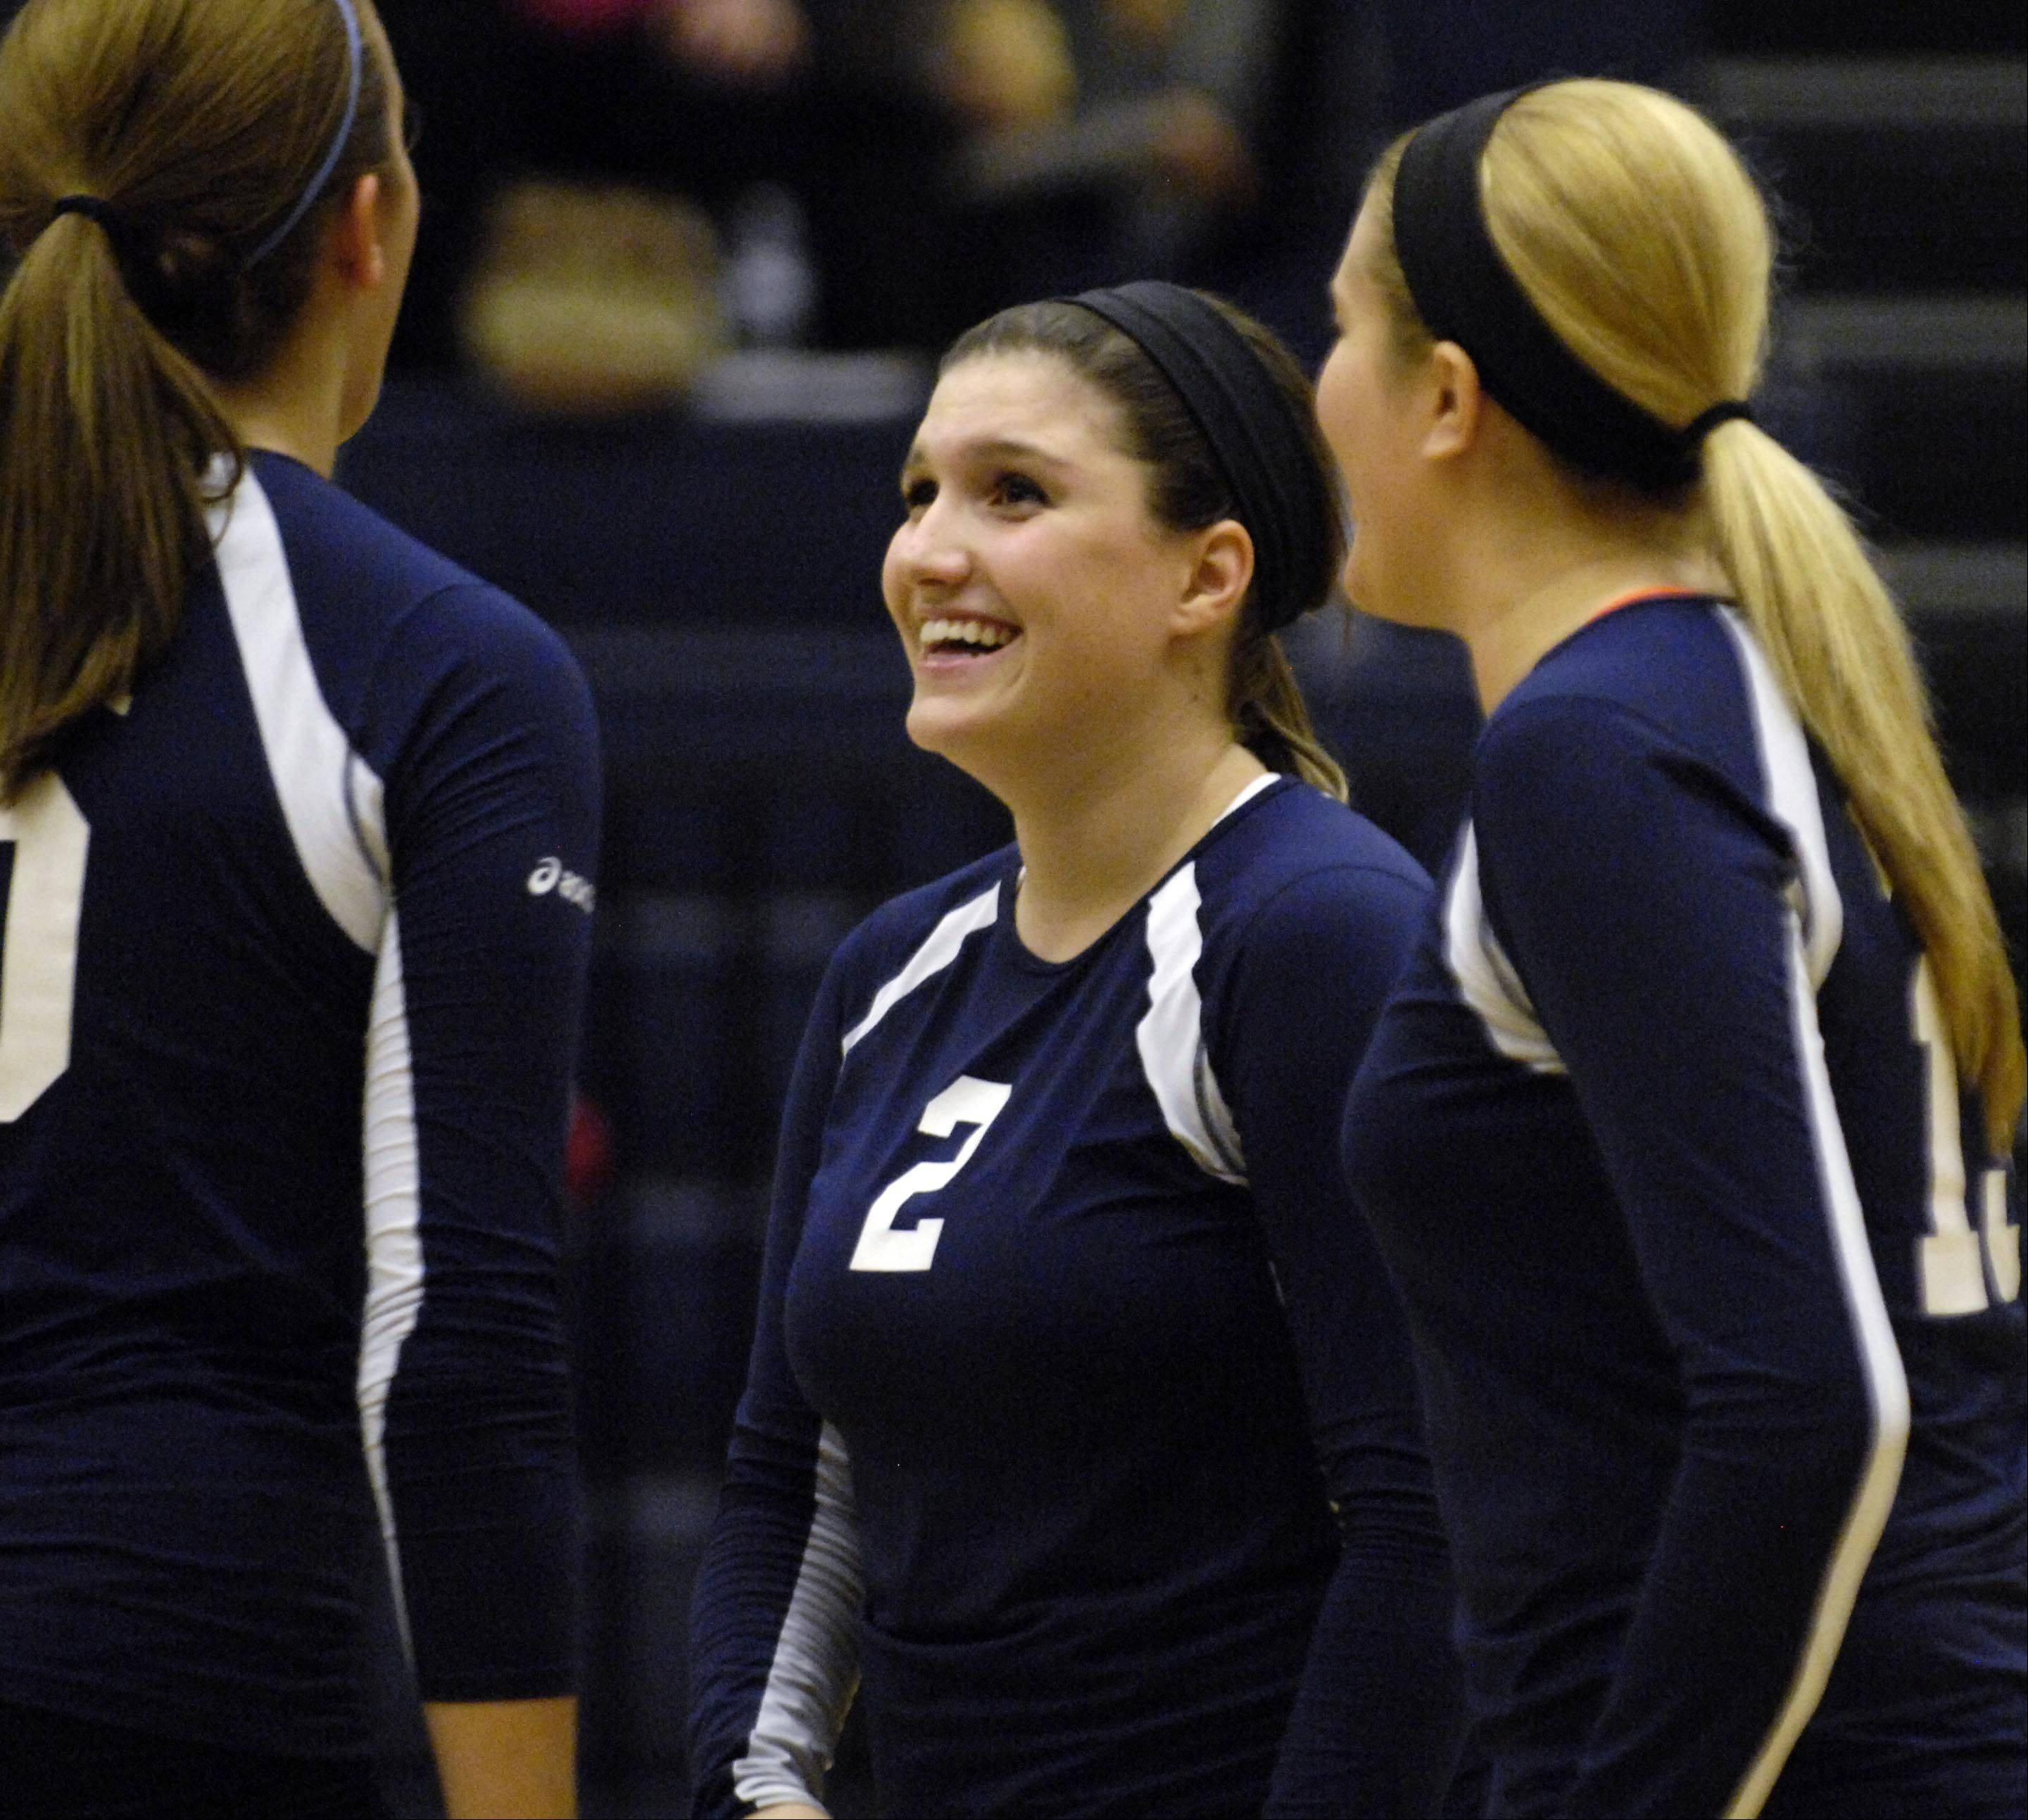 Harvest Christian Academy's Jordan Sollars laughs with teammates near the end of the match against Chicagoland Jewish during the sectional match Tuesday in Elgin.